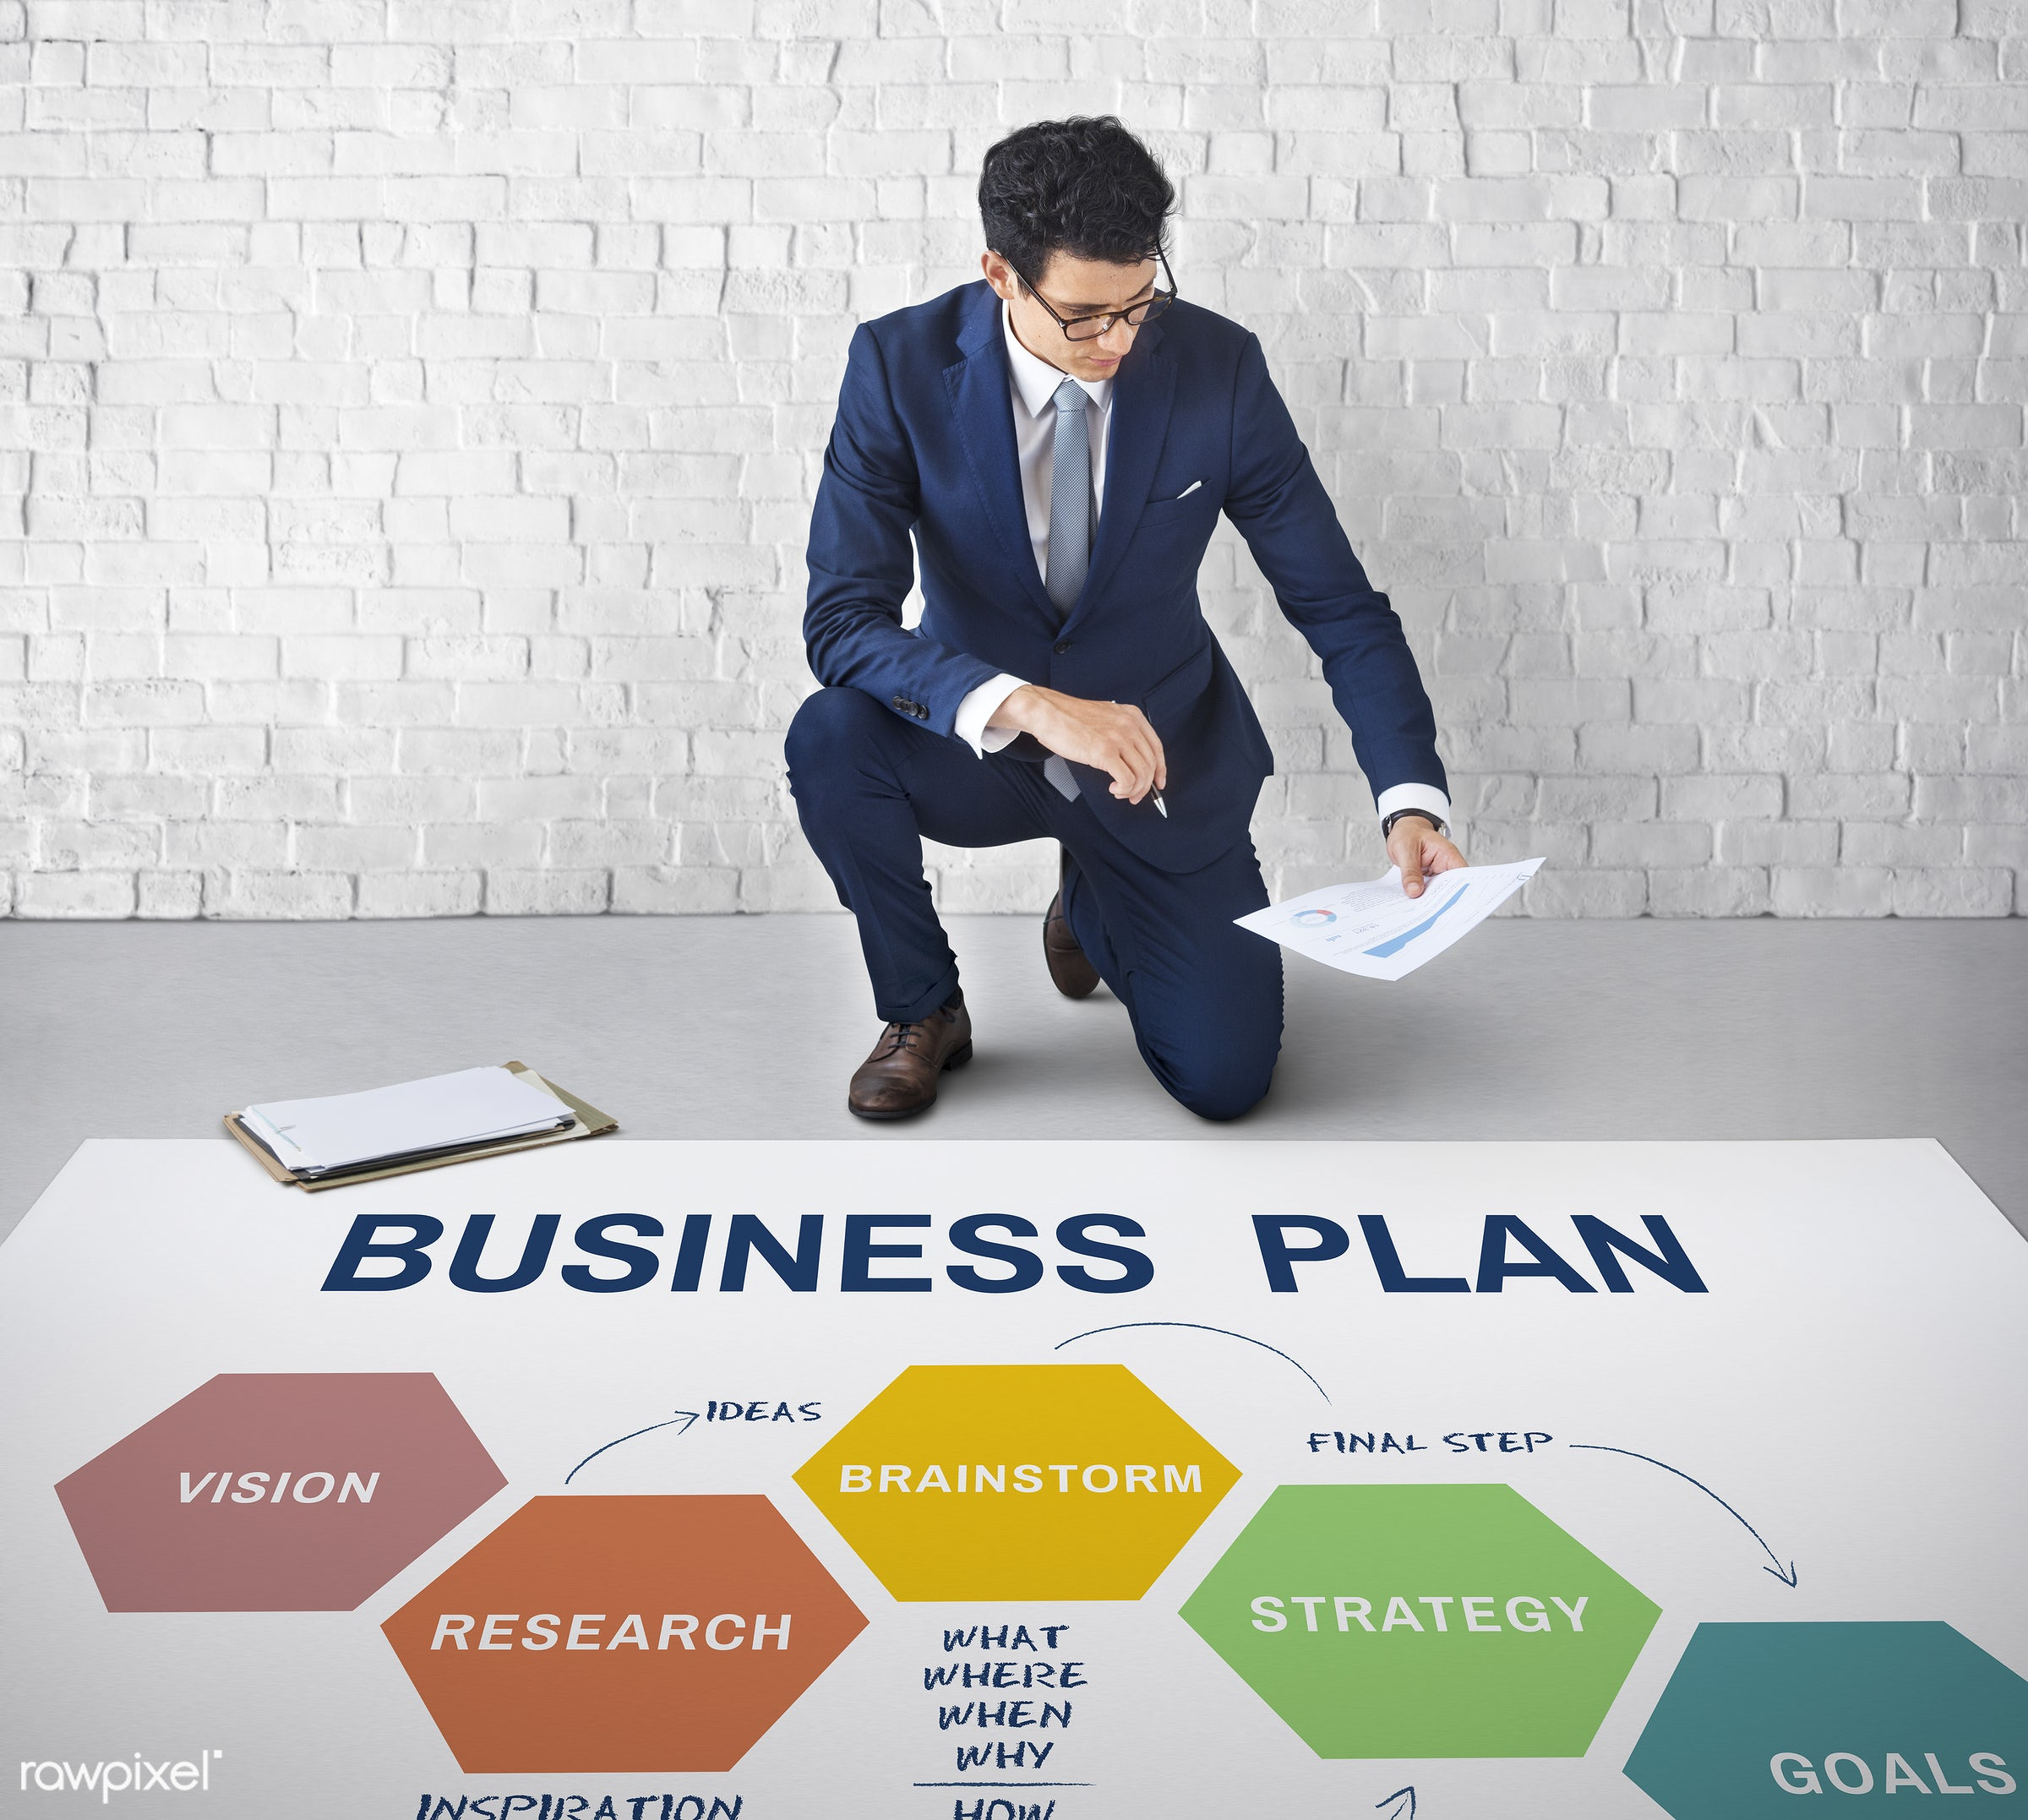 guide, process, analysis, analyzing, business, business people, business person, business plan, businessman, corporate,...